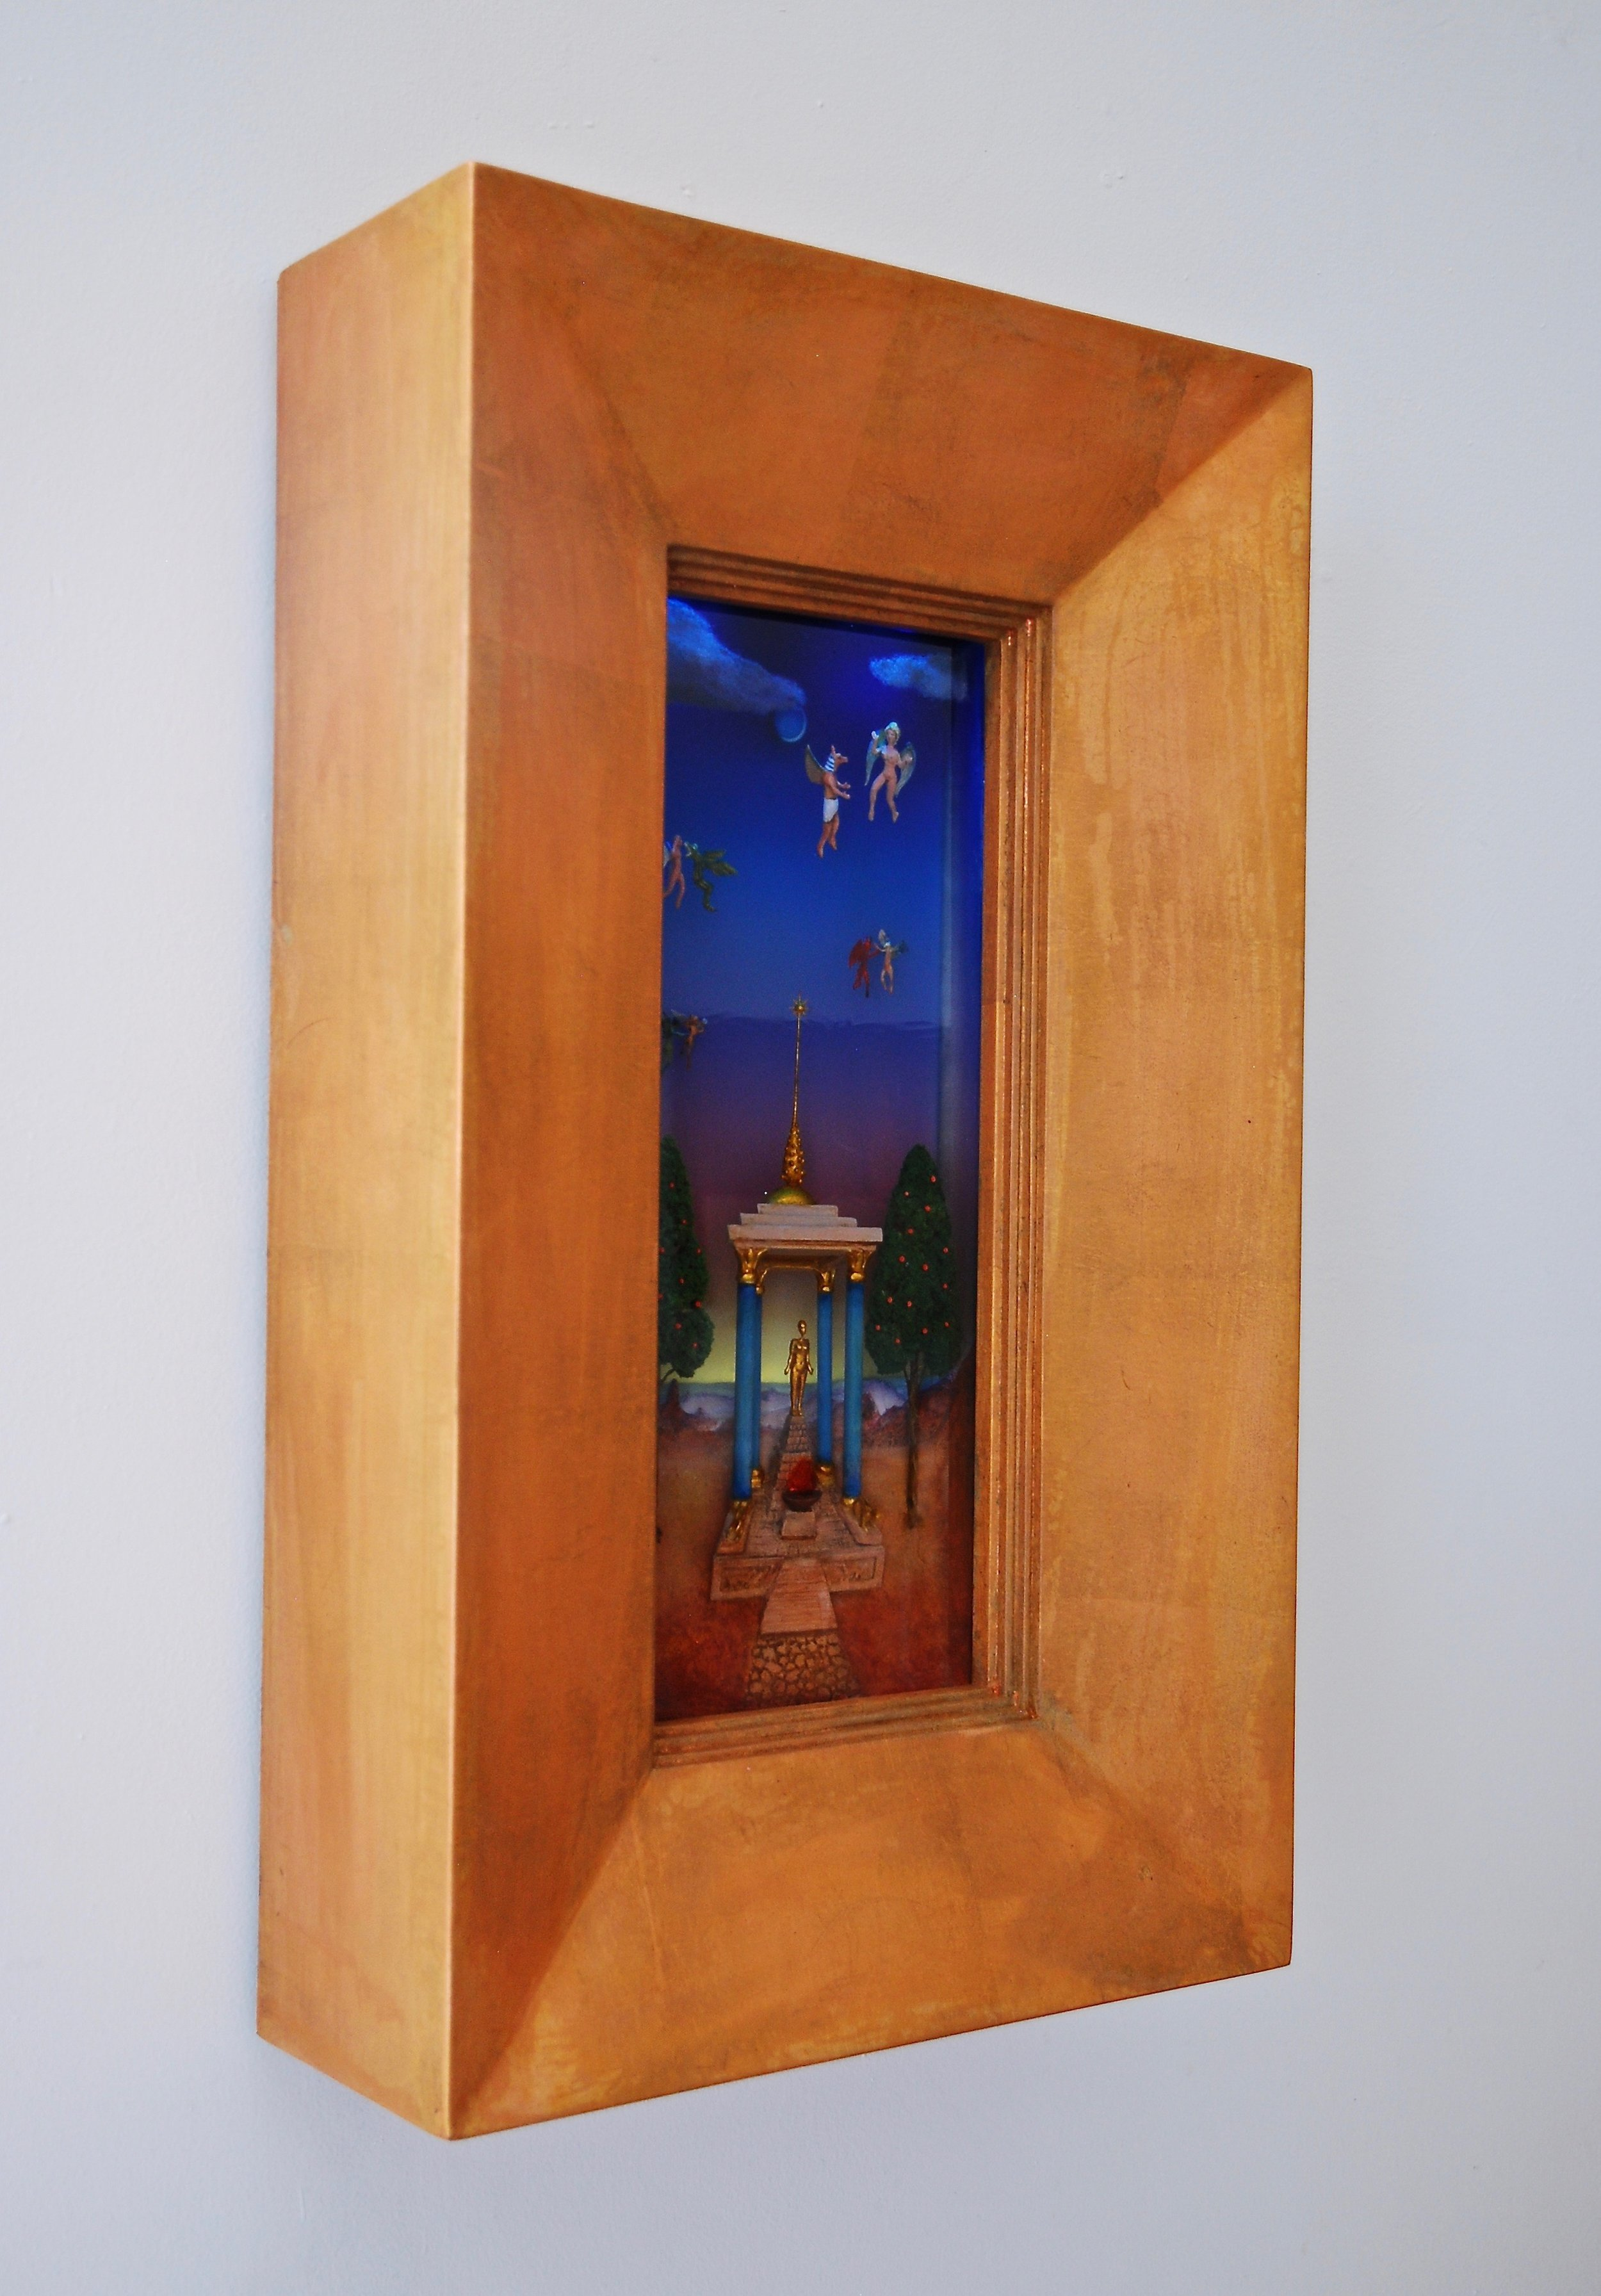 Thomas Coffin - Conversations at the Temple of Baal (side view)